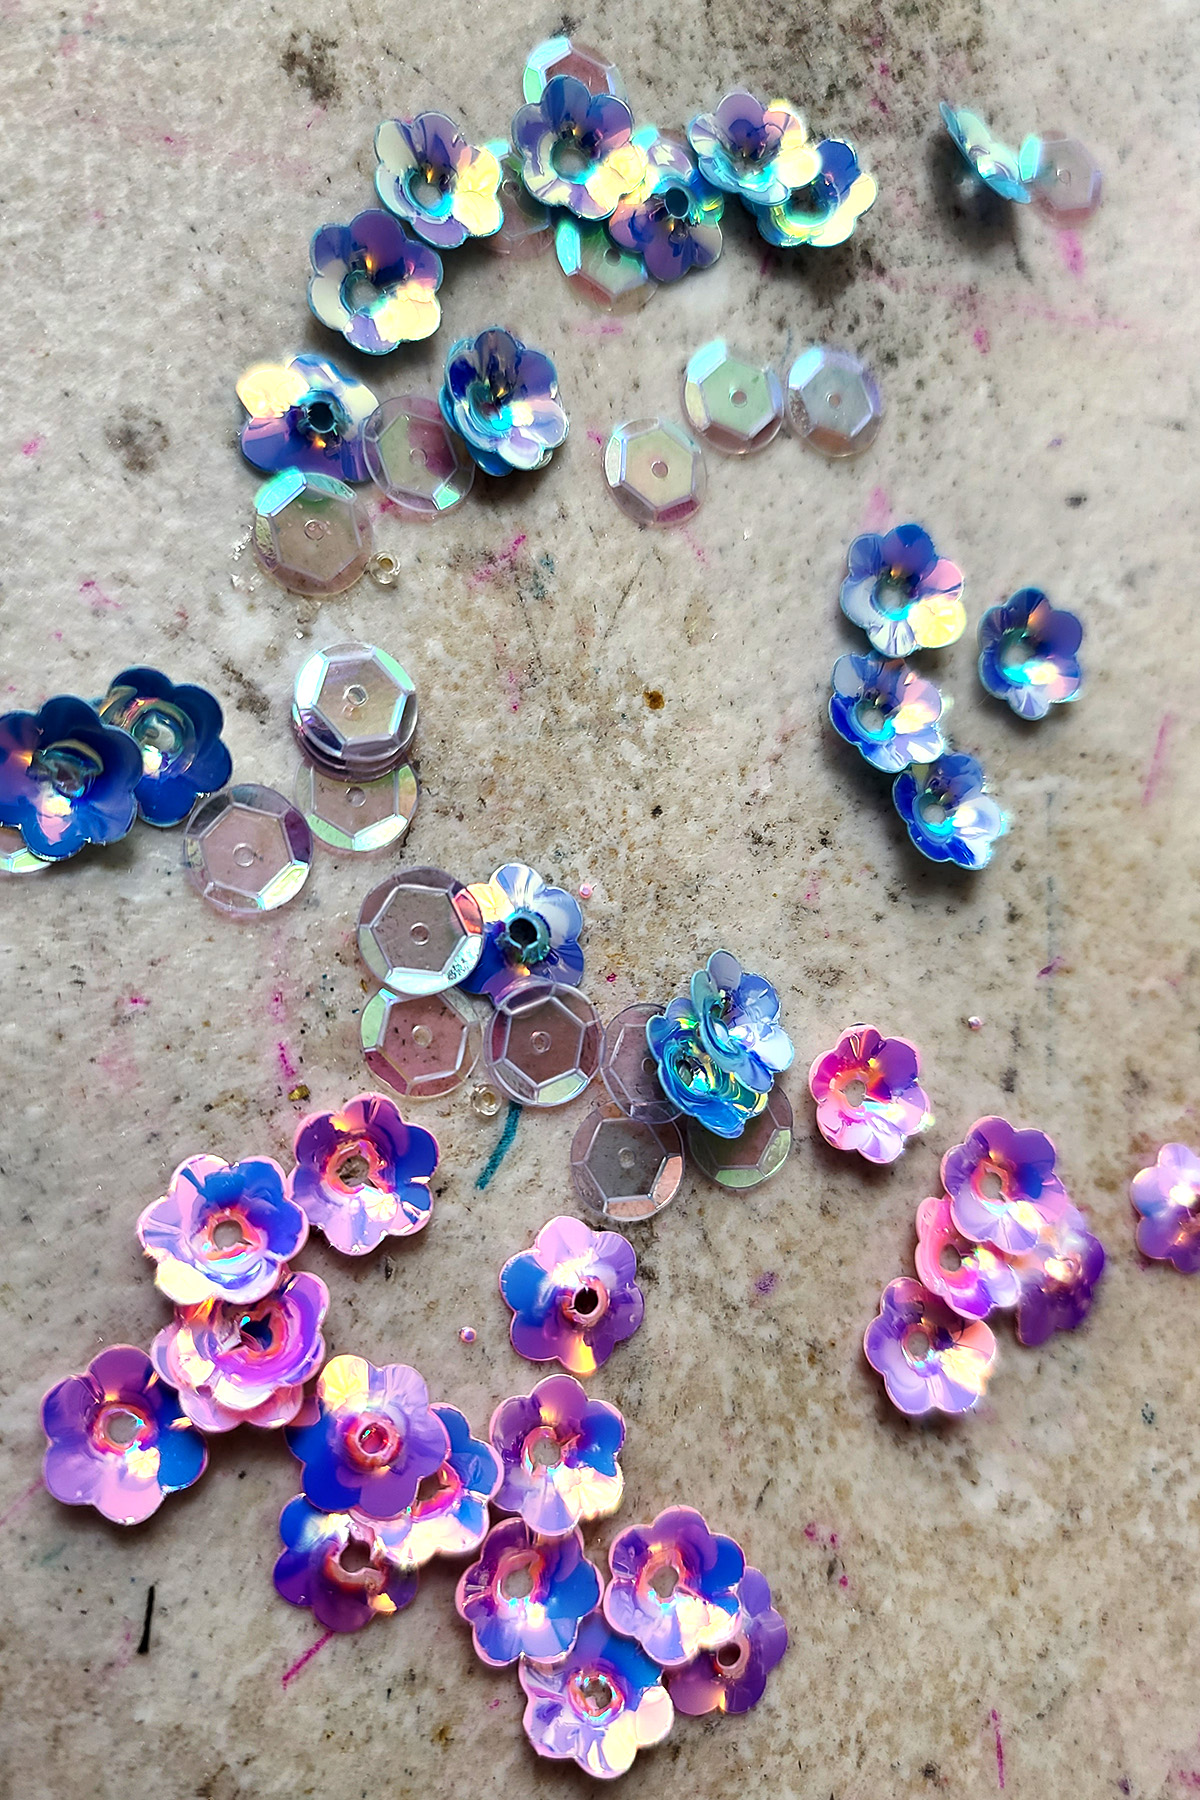 Small piles of various colours and sizes of sequins, on a grey work surface.